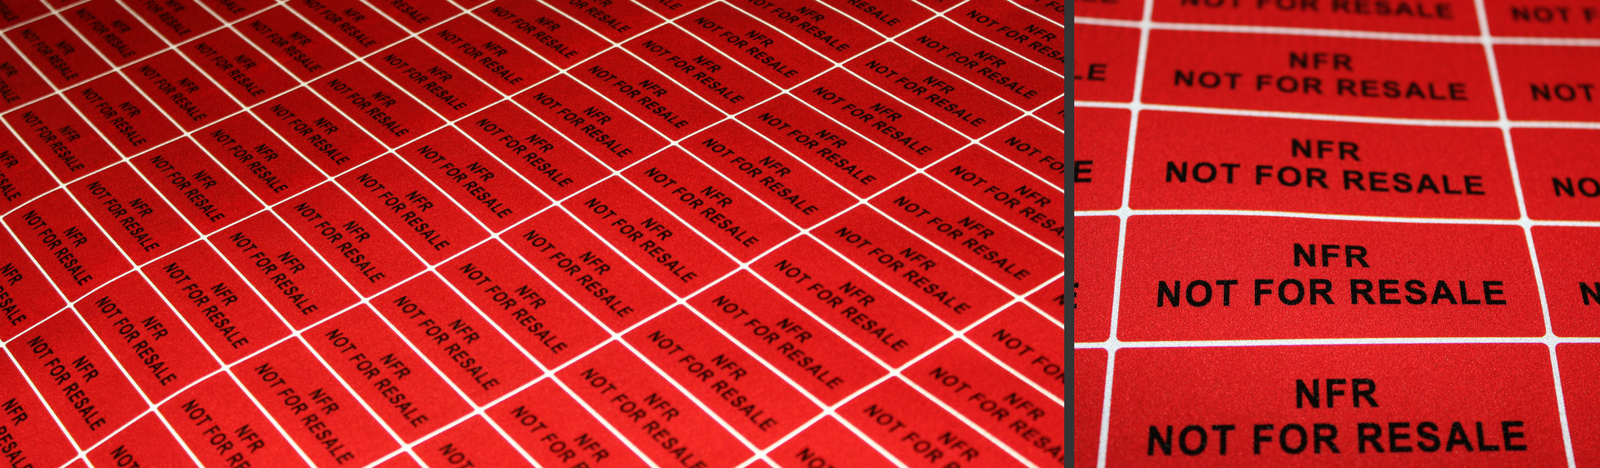 red-reflective-vinyl-labels-printing-multicolor-labels